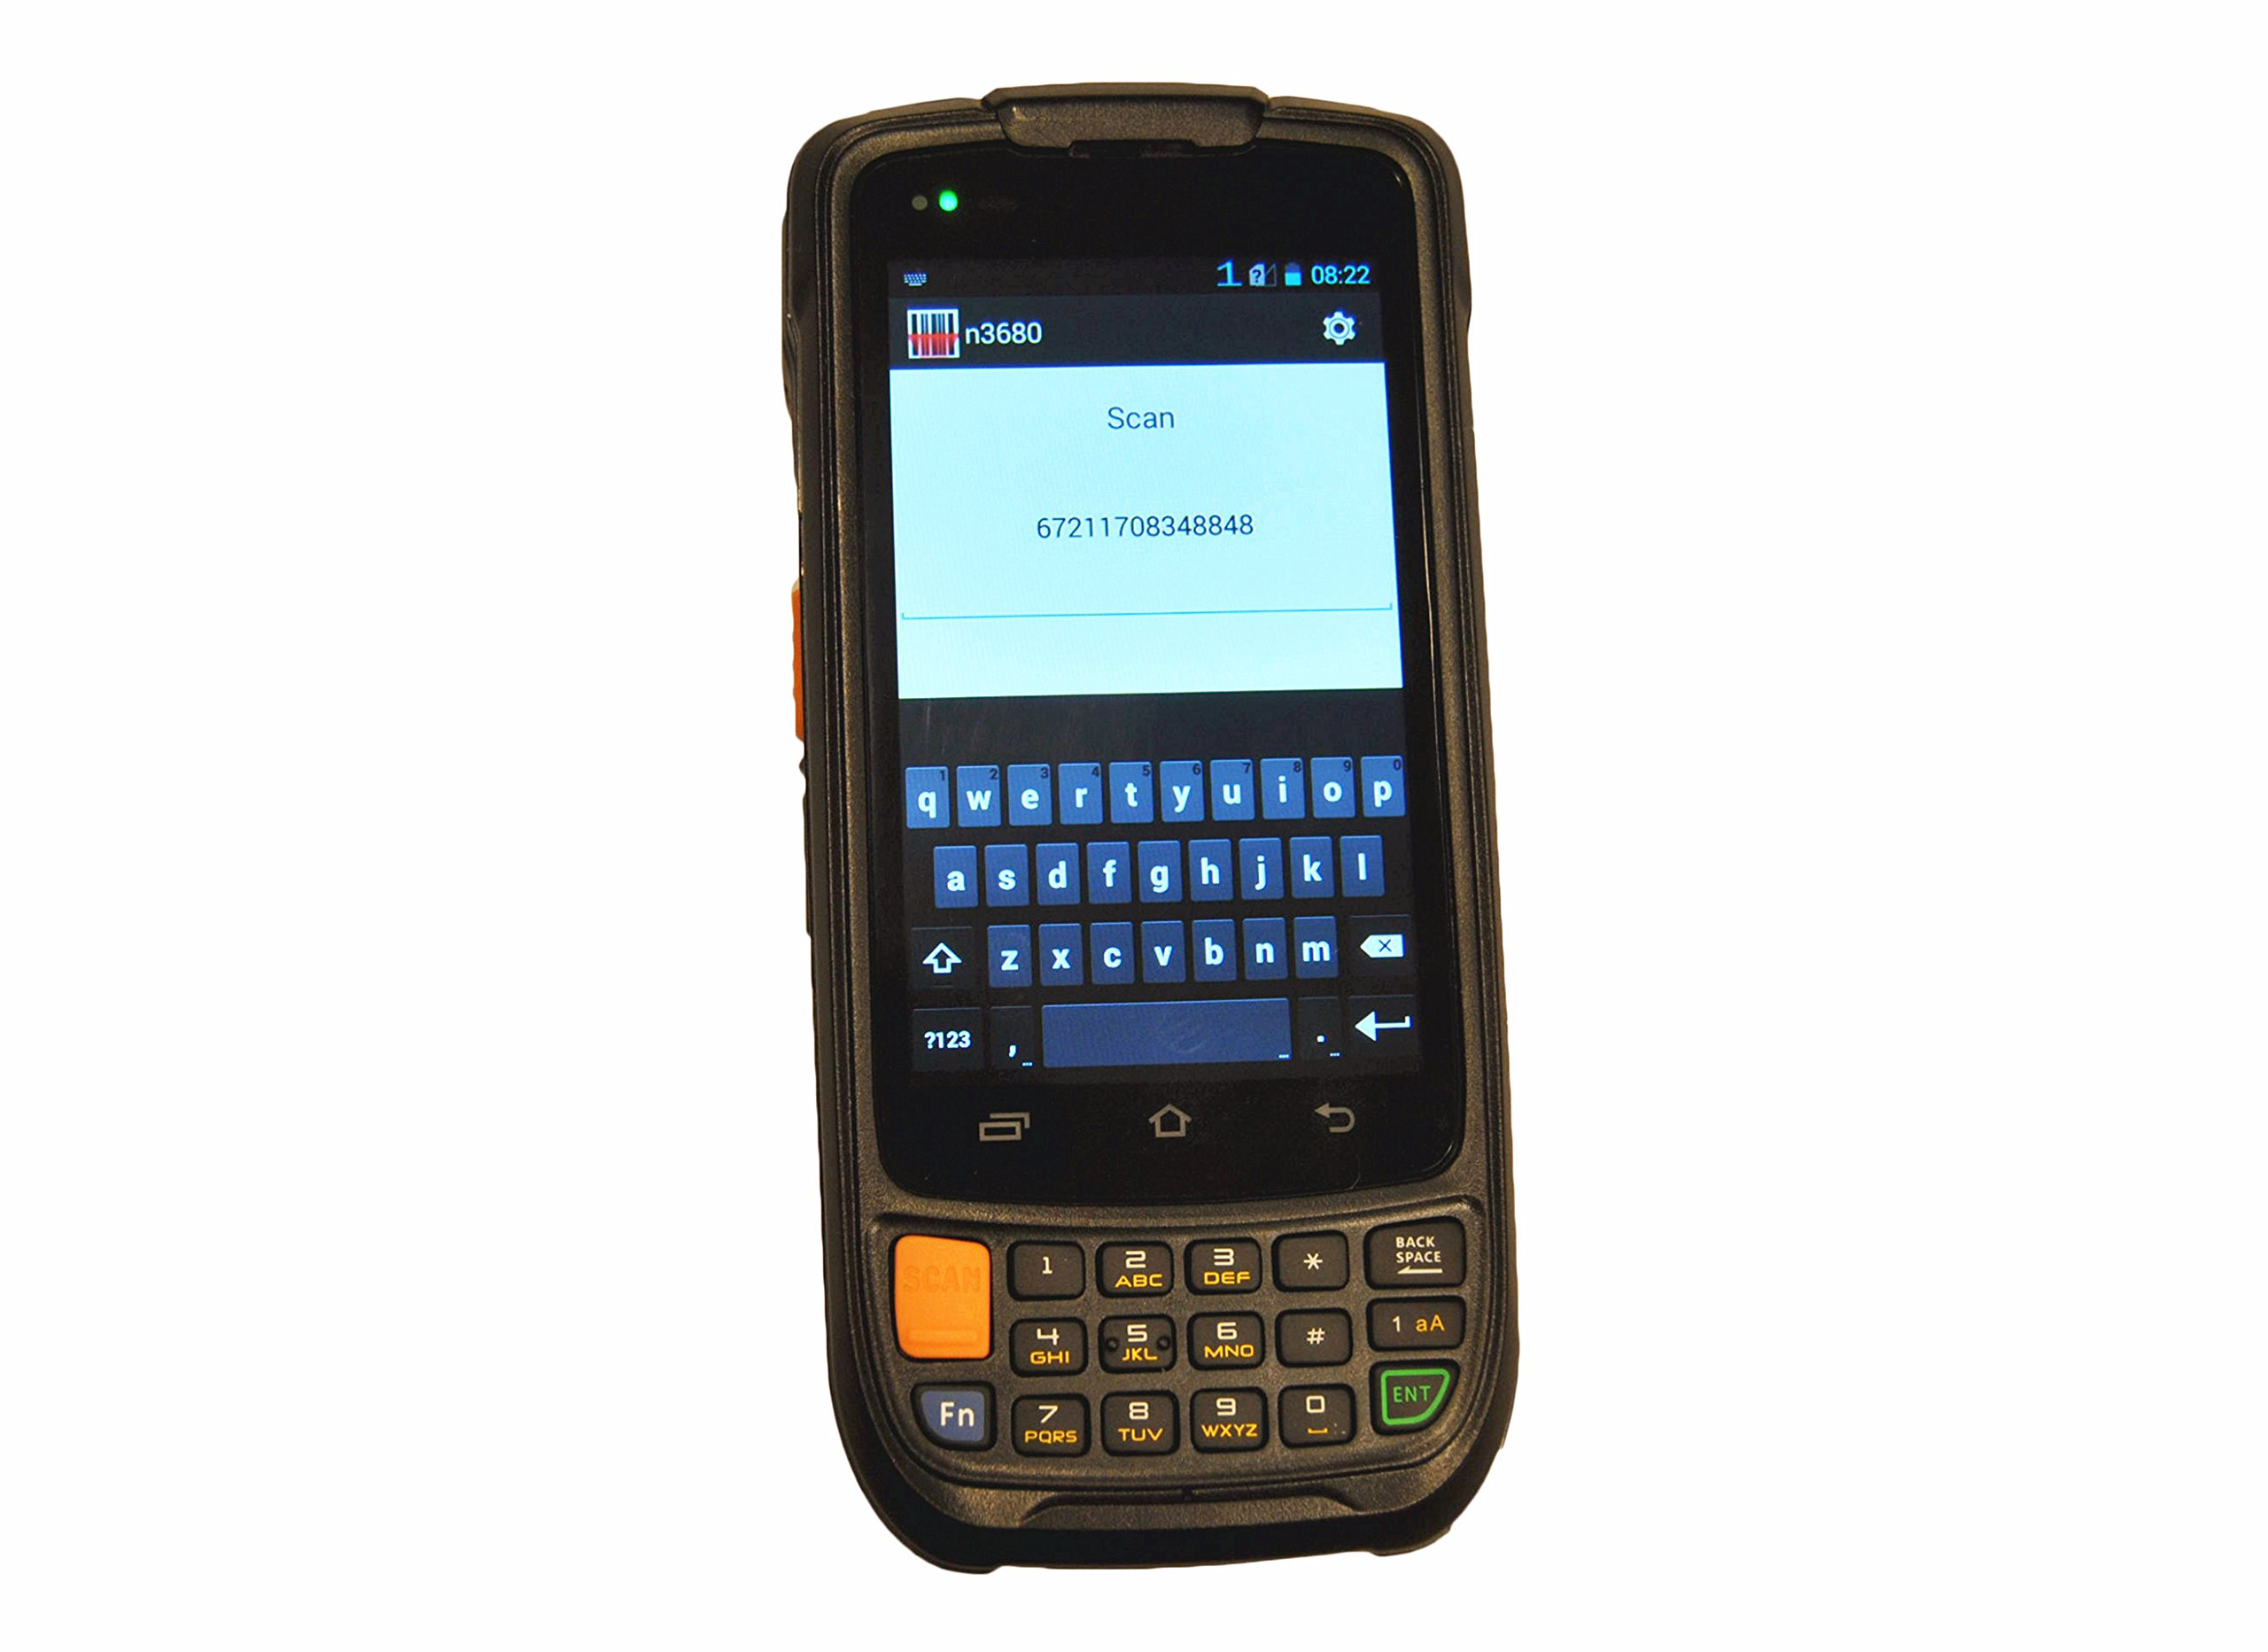 Cruiser Enterprise Handheld Terminal Android PDA Barcode Scanner, Integrated Zebra 1D Laser Barcode Engine, Android 5.1 OS, WiFi 802.11b/g/n, For Field Mobile Work by Cruiser (Image #1)